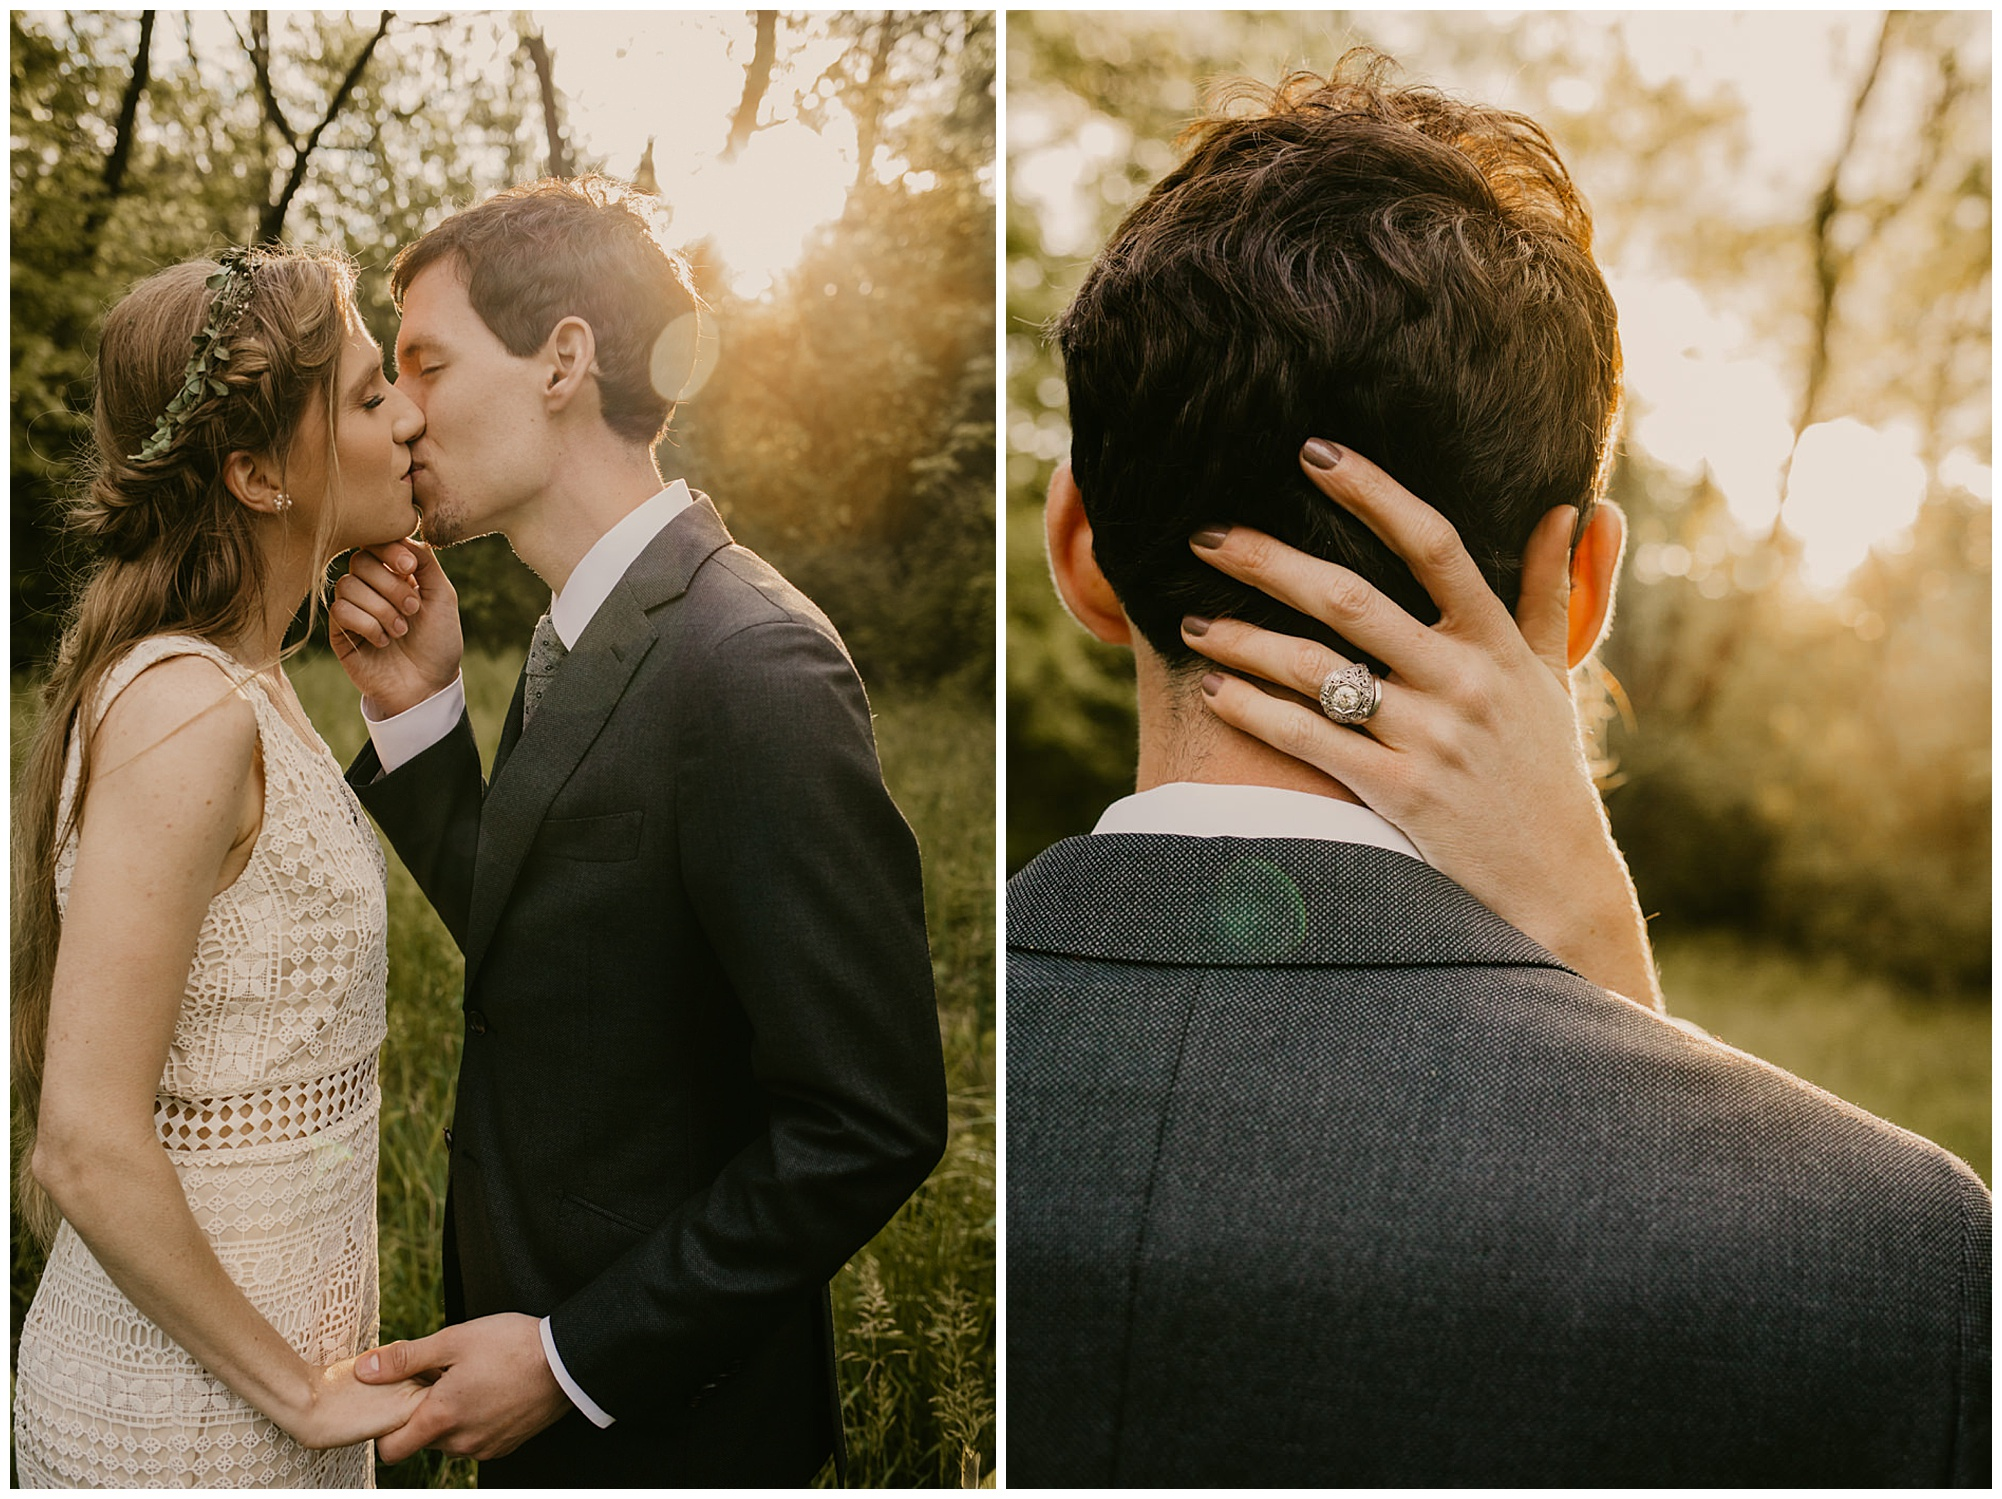 chic boho style wedding and carefree elopement inspo at prancing deer farm in warwick maryland now featured on my eastern shore wedding blog